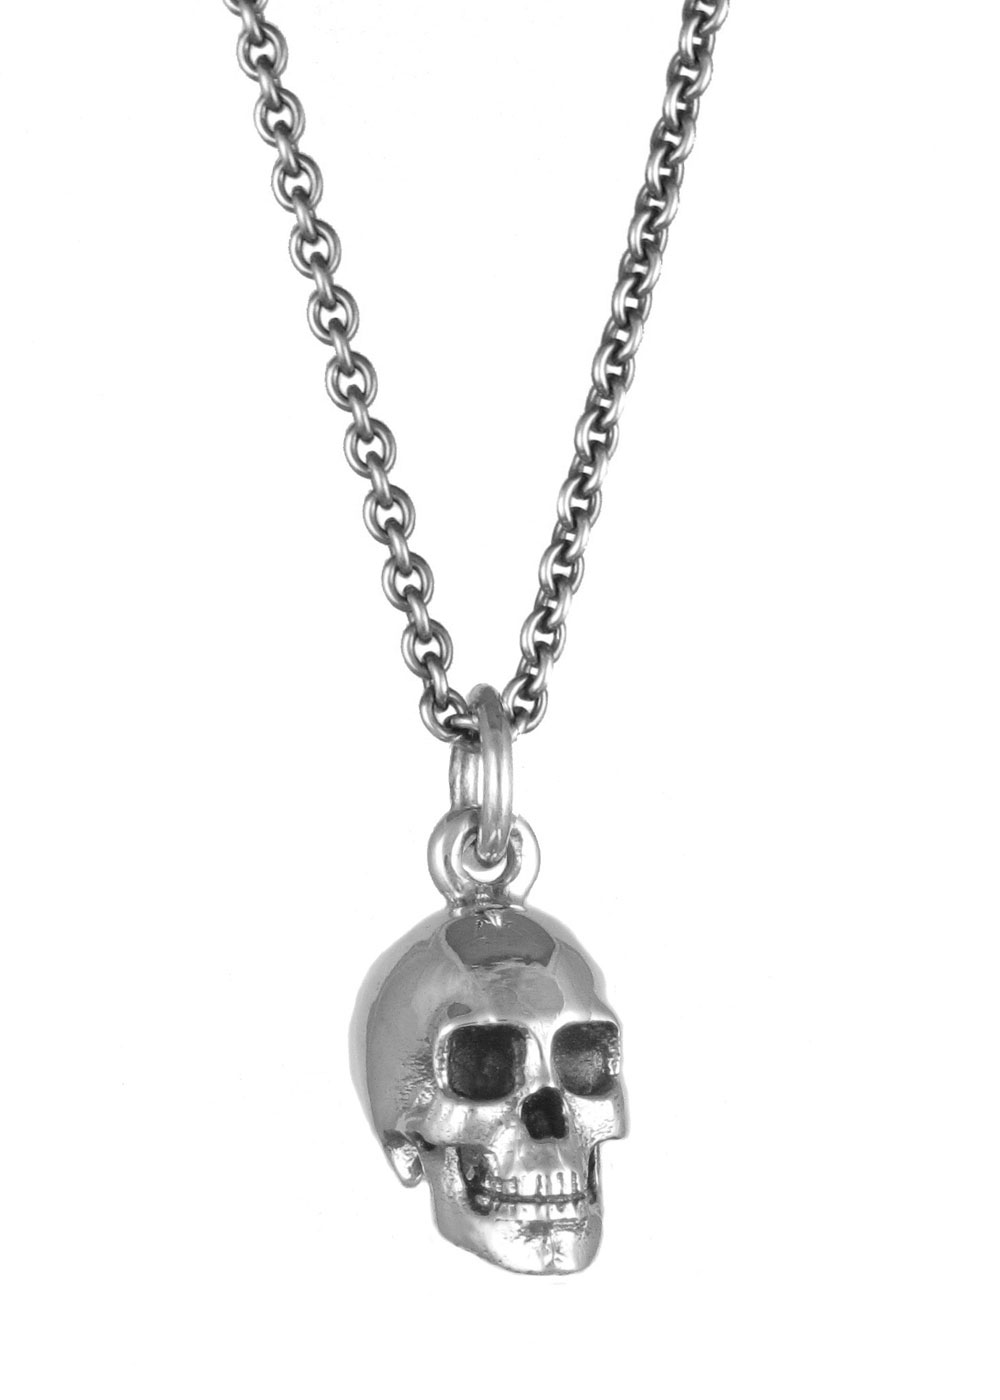 with sterling fear necklace detail for rsp persona jewelry pendant onyx your product create men black biker silver border and strike skull